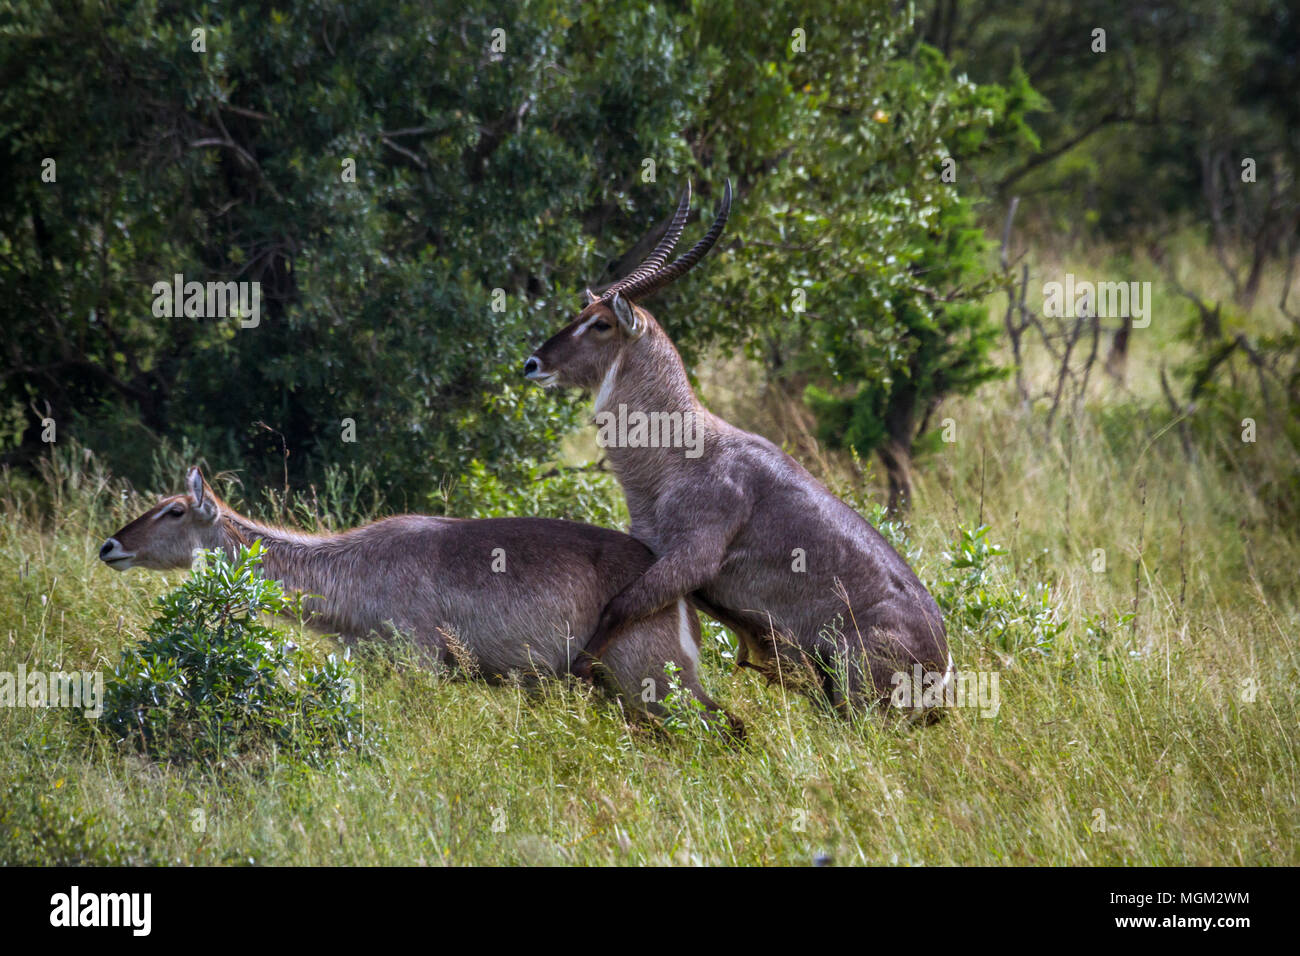 Common waterbuck in Kruger national park, South Africa ;Specie Kobus ellipsiprymnus family of Kobus ellipsiprymnus - Stock Image